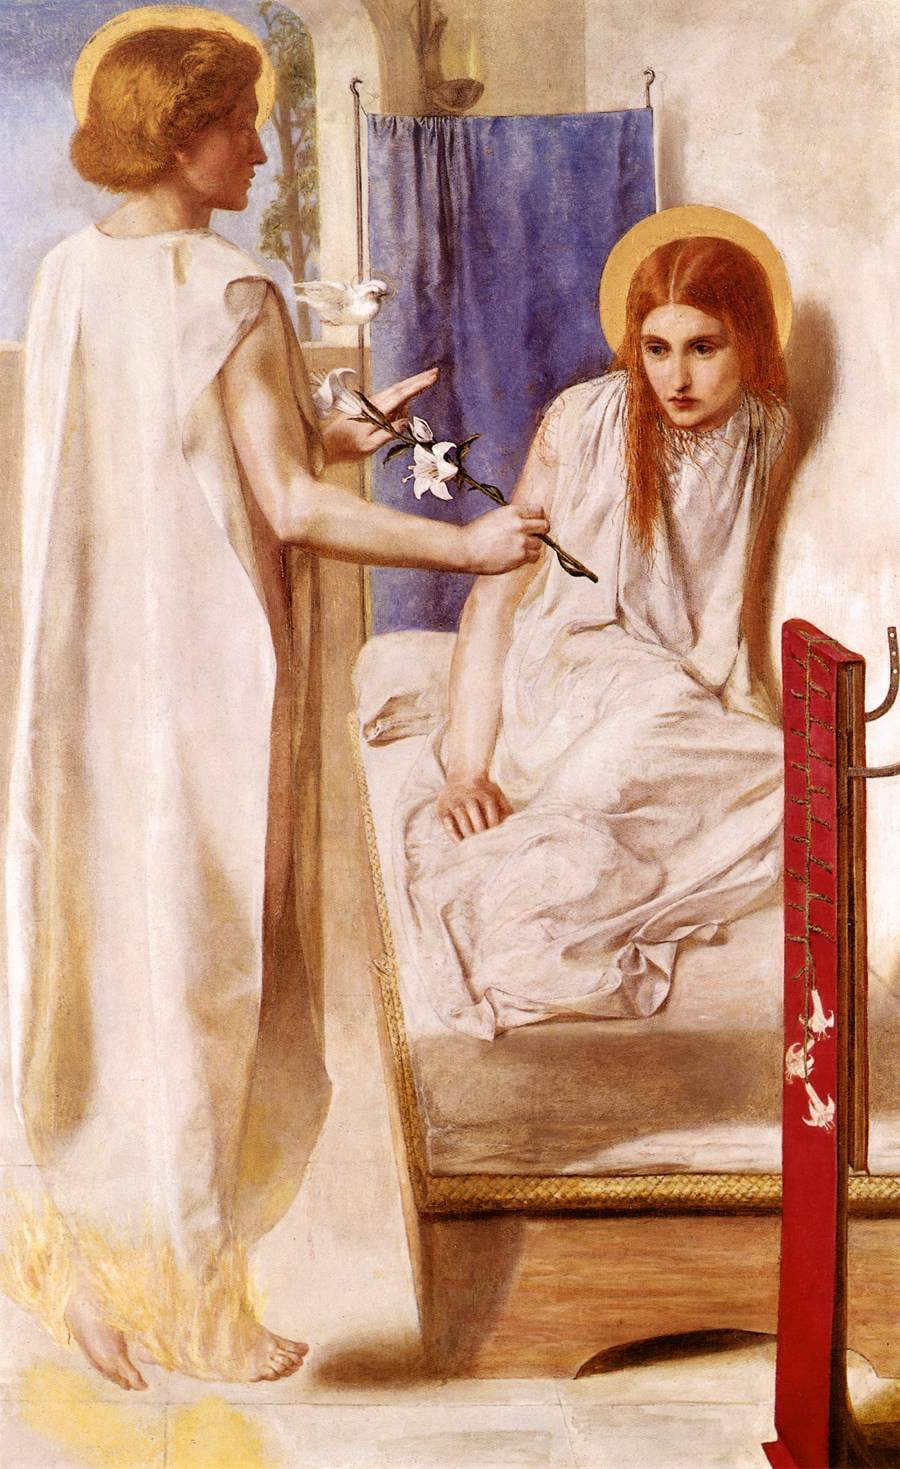 Ecce Ancilla Domini! (The Annunciation), 1849-50. Dante Gabriel Rossetti (English, Pre-Raphaelite, 1828‑1882). Oil on canvas. Tate. Traditionally the Virgin was depicted in studious contemplation, reading a missal at a prie-dieu; but here Rossetti shows her rising awkwardly from a low bed, as if disturbed from sleep, while the Angel Gabriel presents her with a white lily. Both figures are dressed in white, a symbol of the virgin's purity, and the angel's role as the messenger of God is emphasised by the small white dove hovering beside him, signifying the presence of the Holy Spirit.